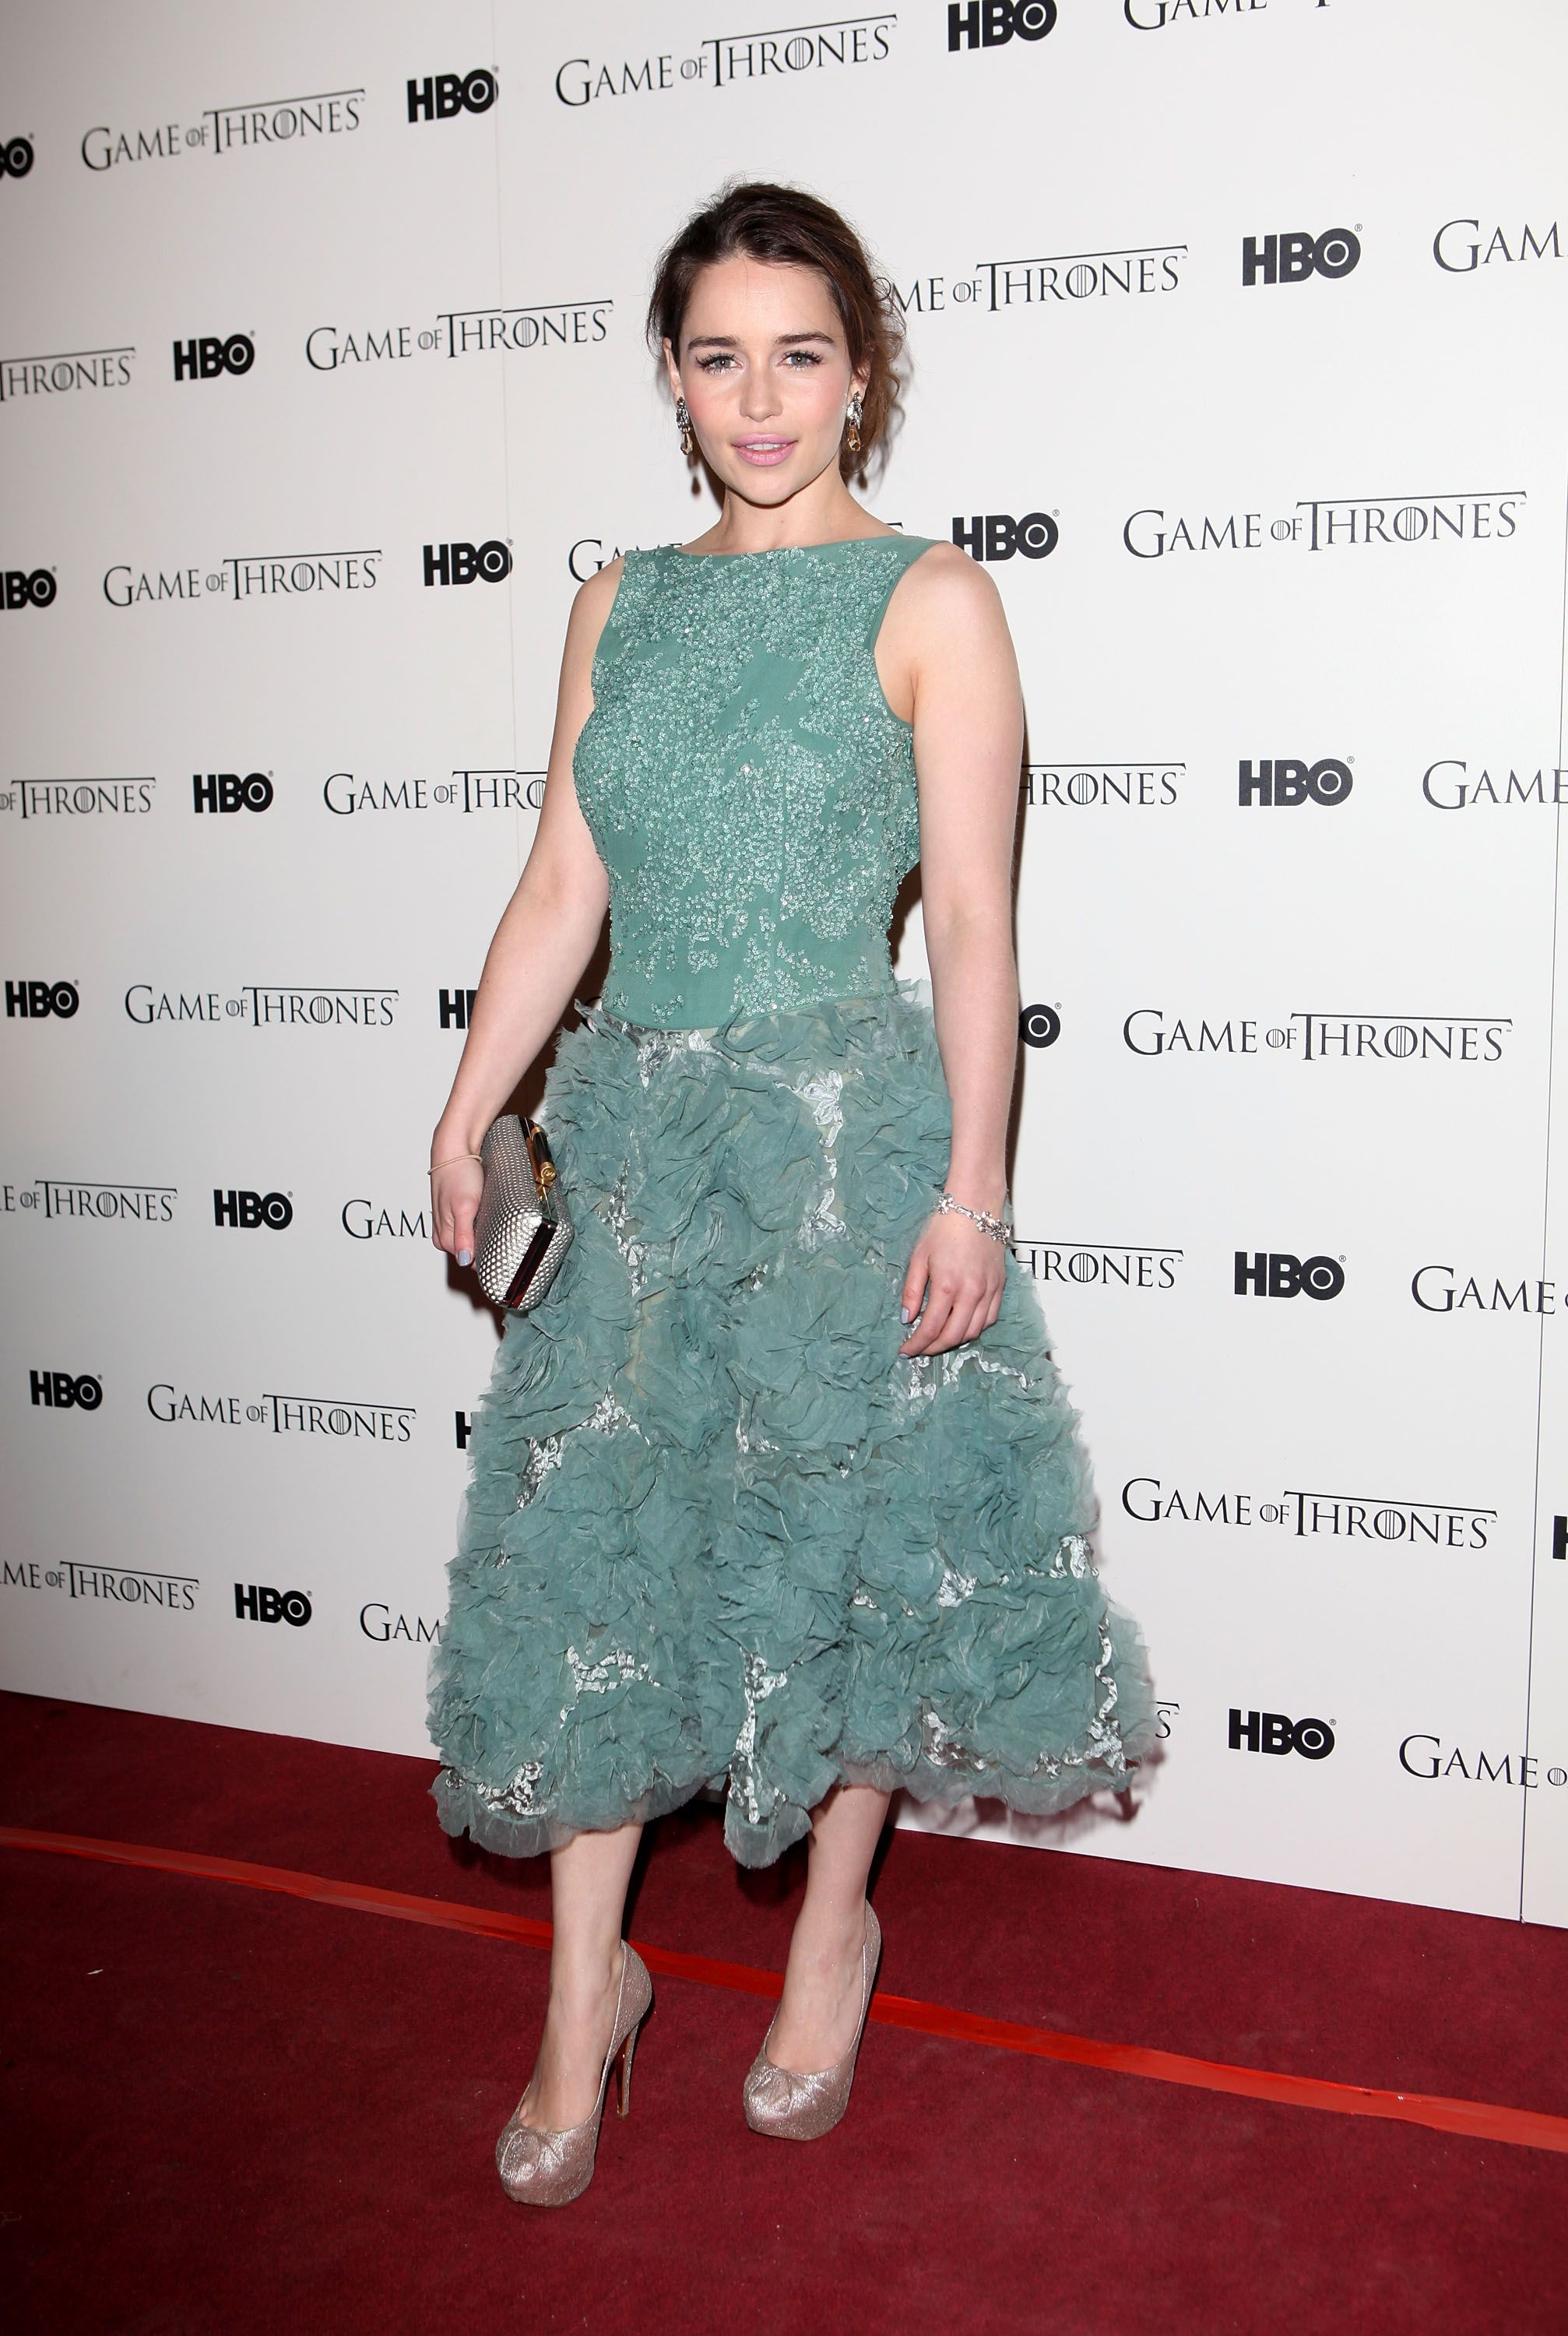 Game Of Thrones - DVD premiere